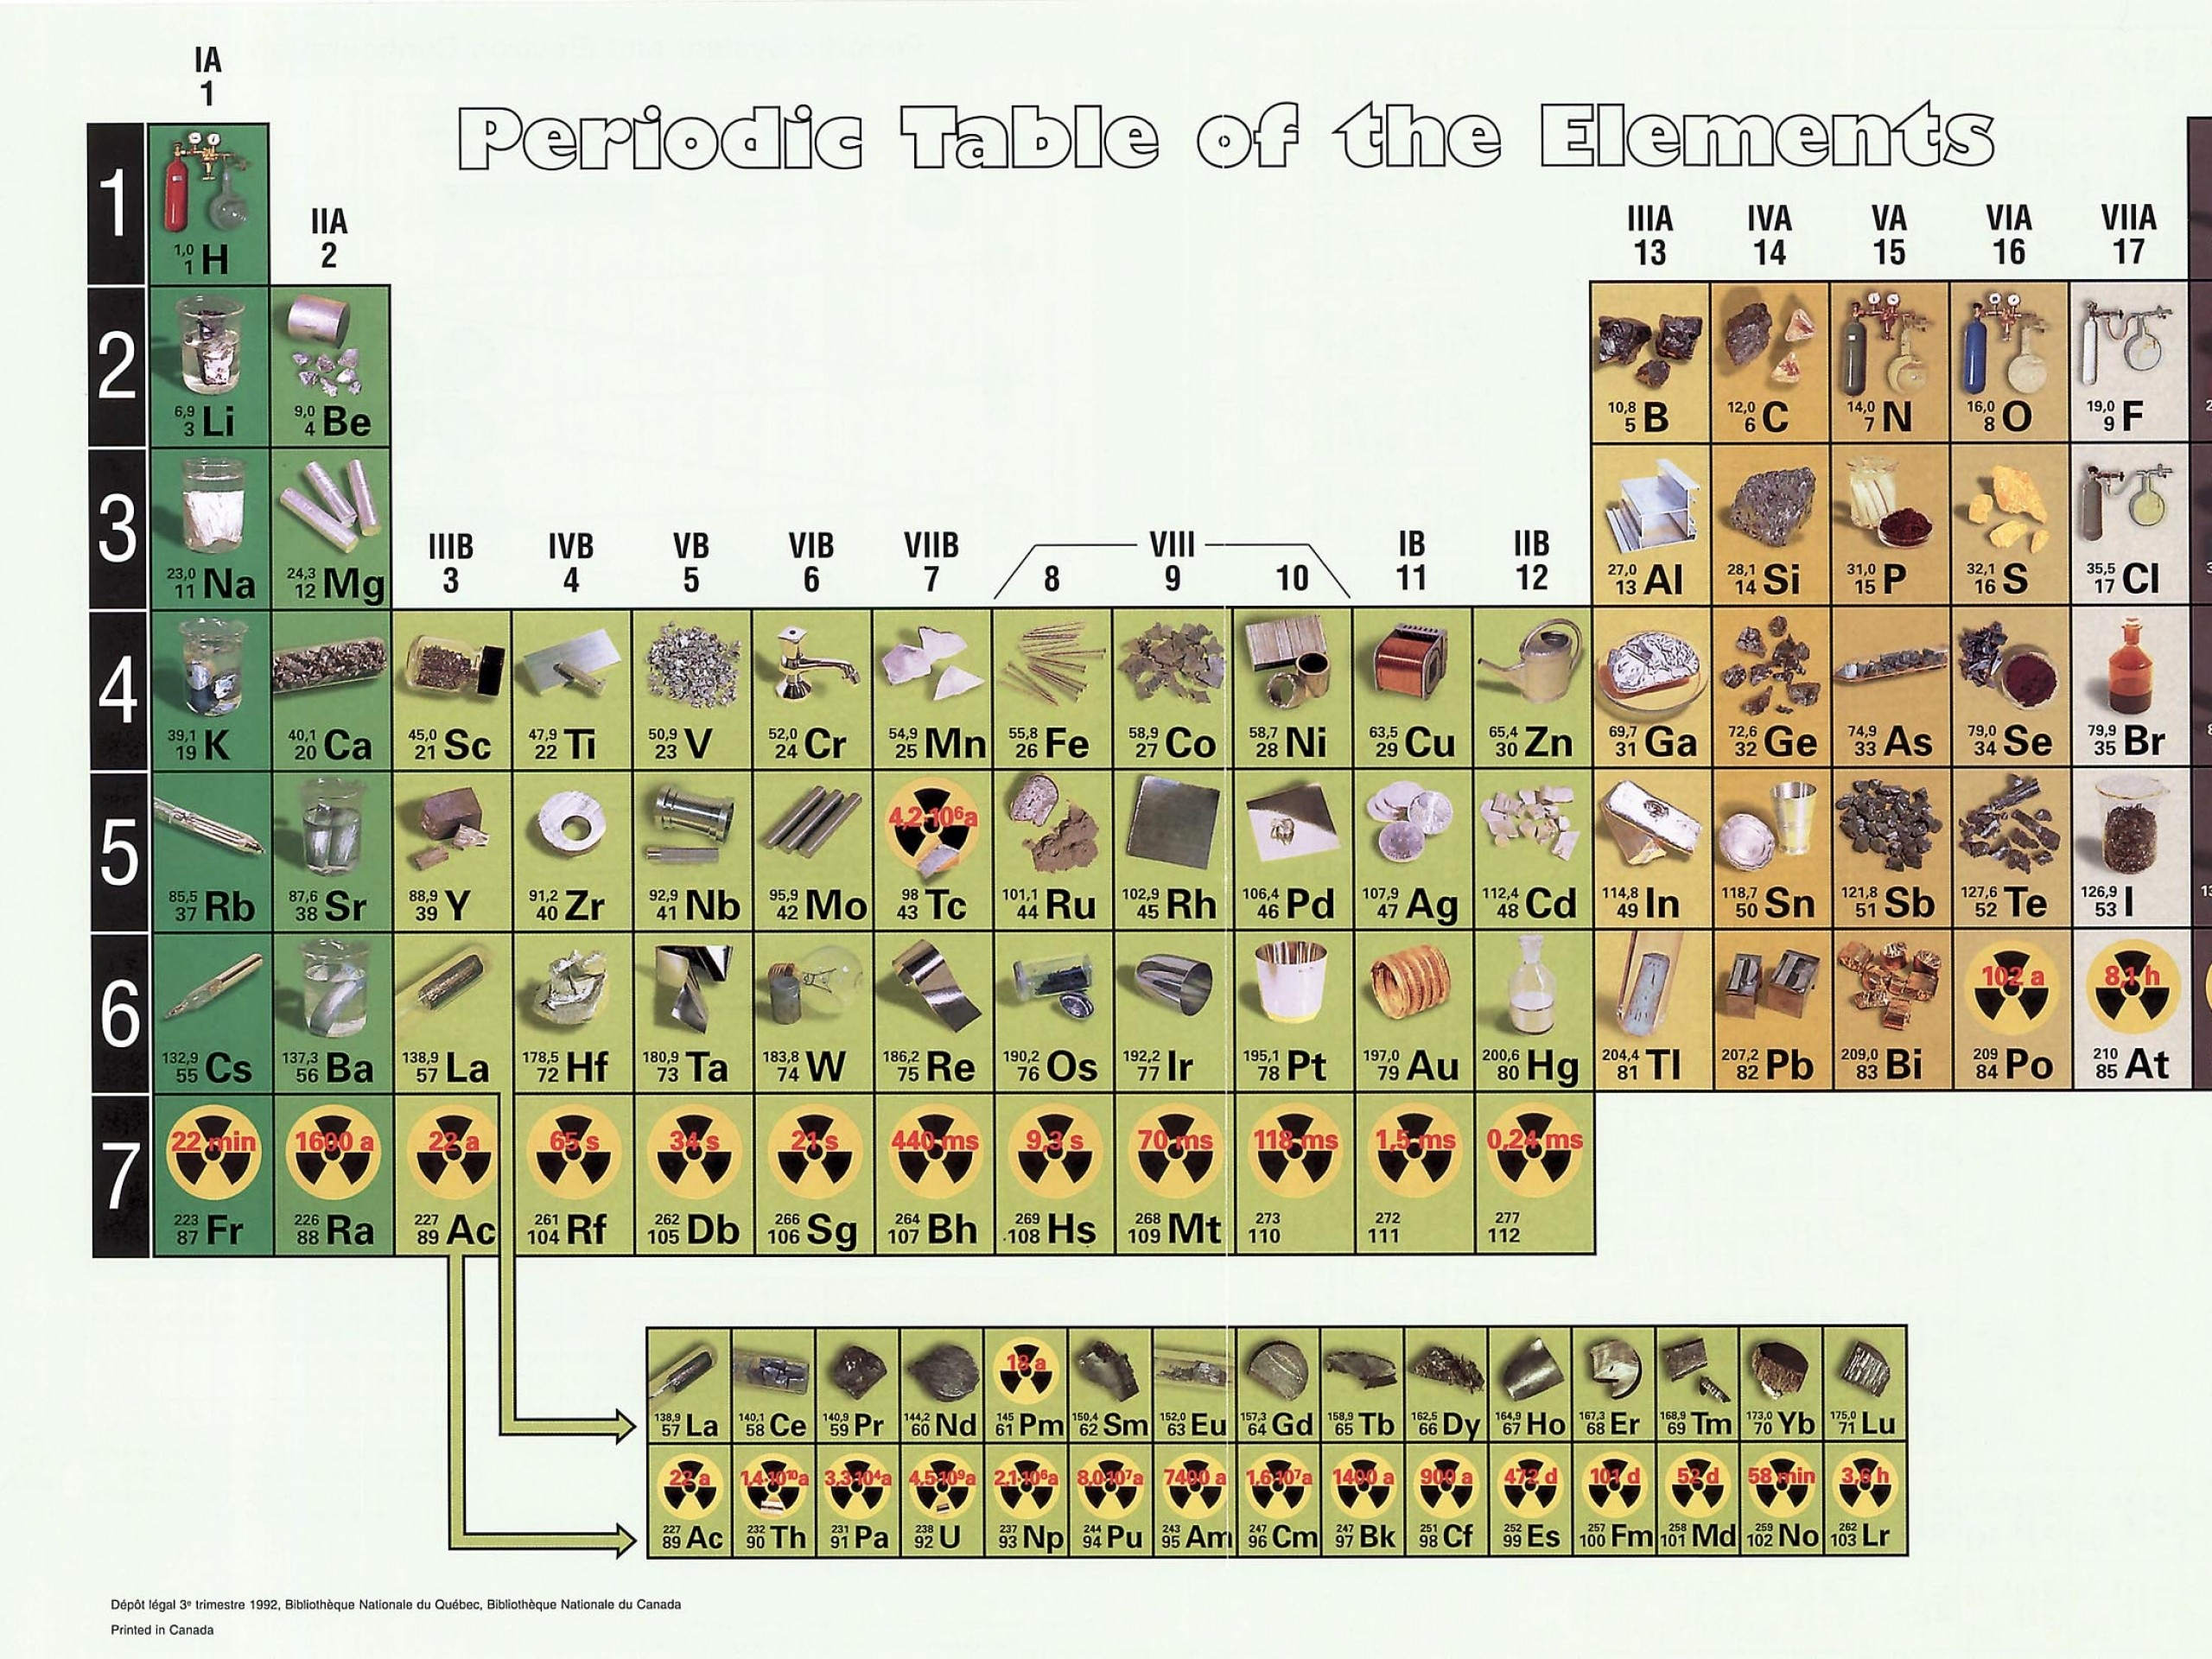 Periodic table mi gallery periodic table images c periodic table choice image periodic table images 26th element periodic table choice image periodic table gamestrikefo Image collections